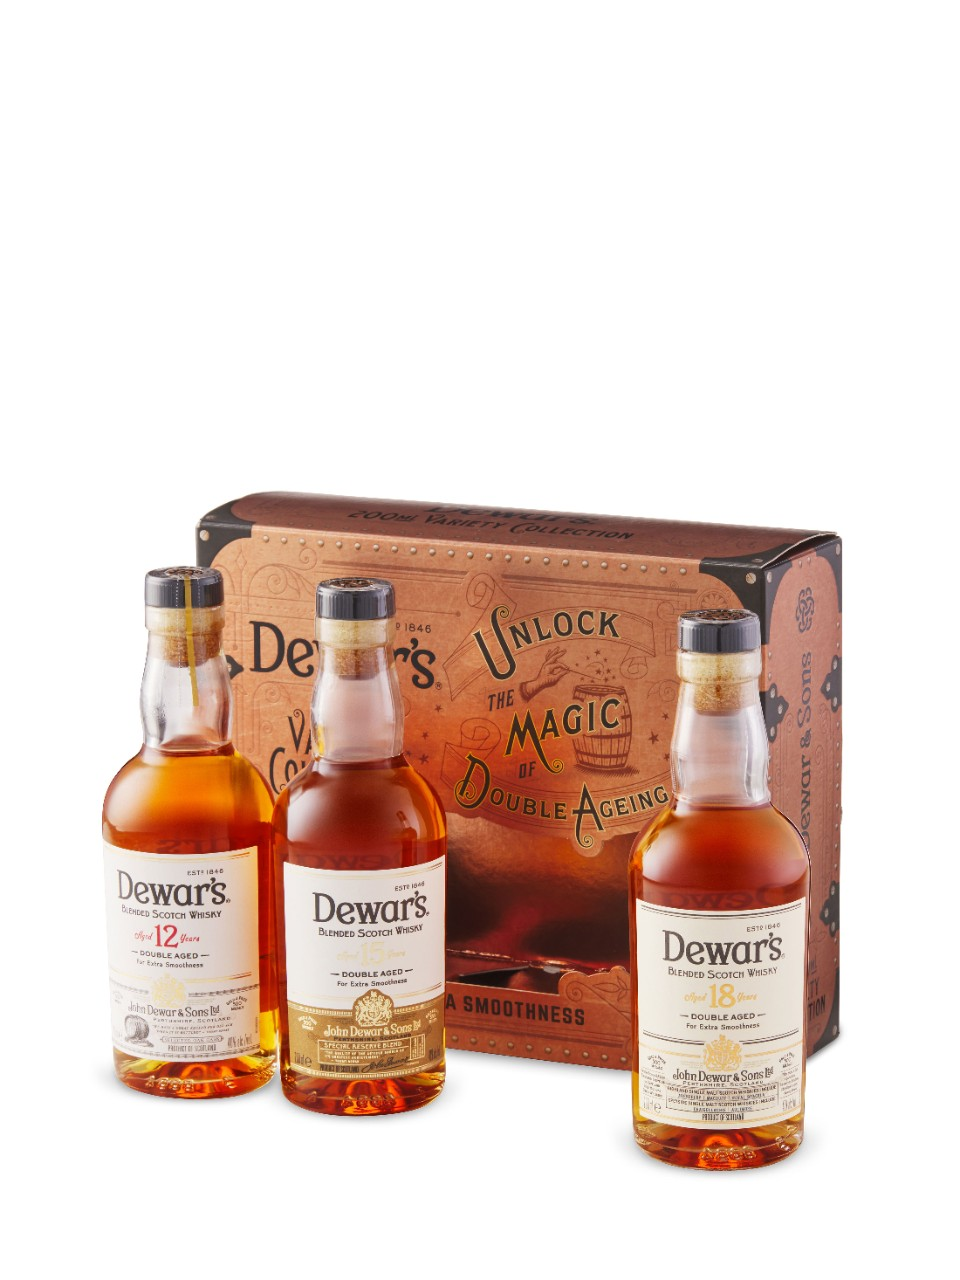 Dewar's Whisky Tasting Collection from LCBO